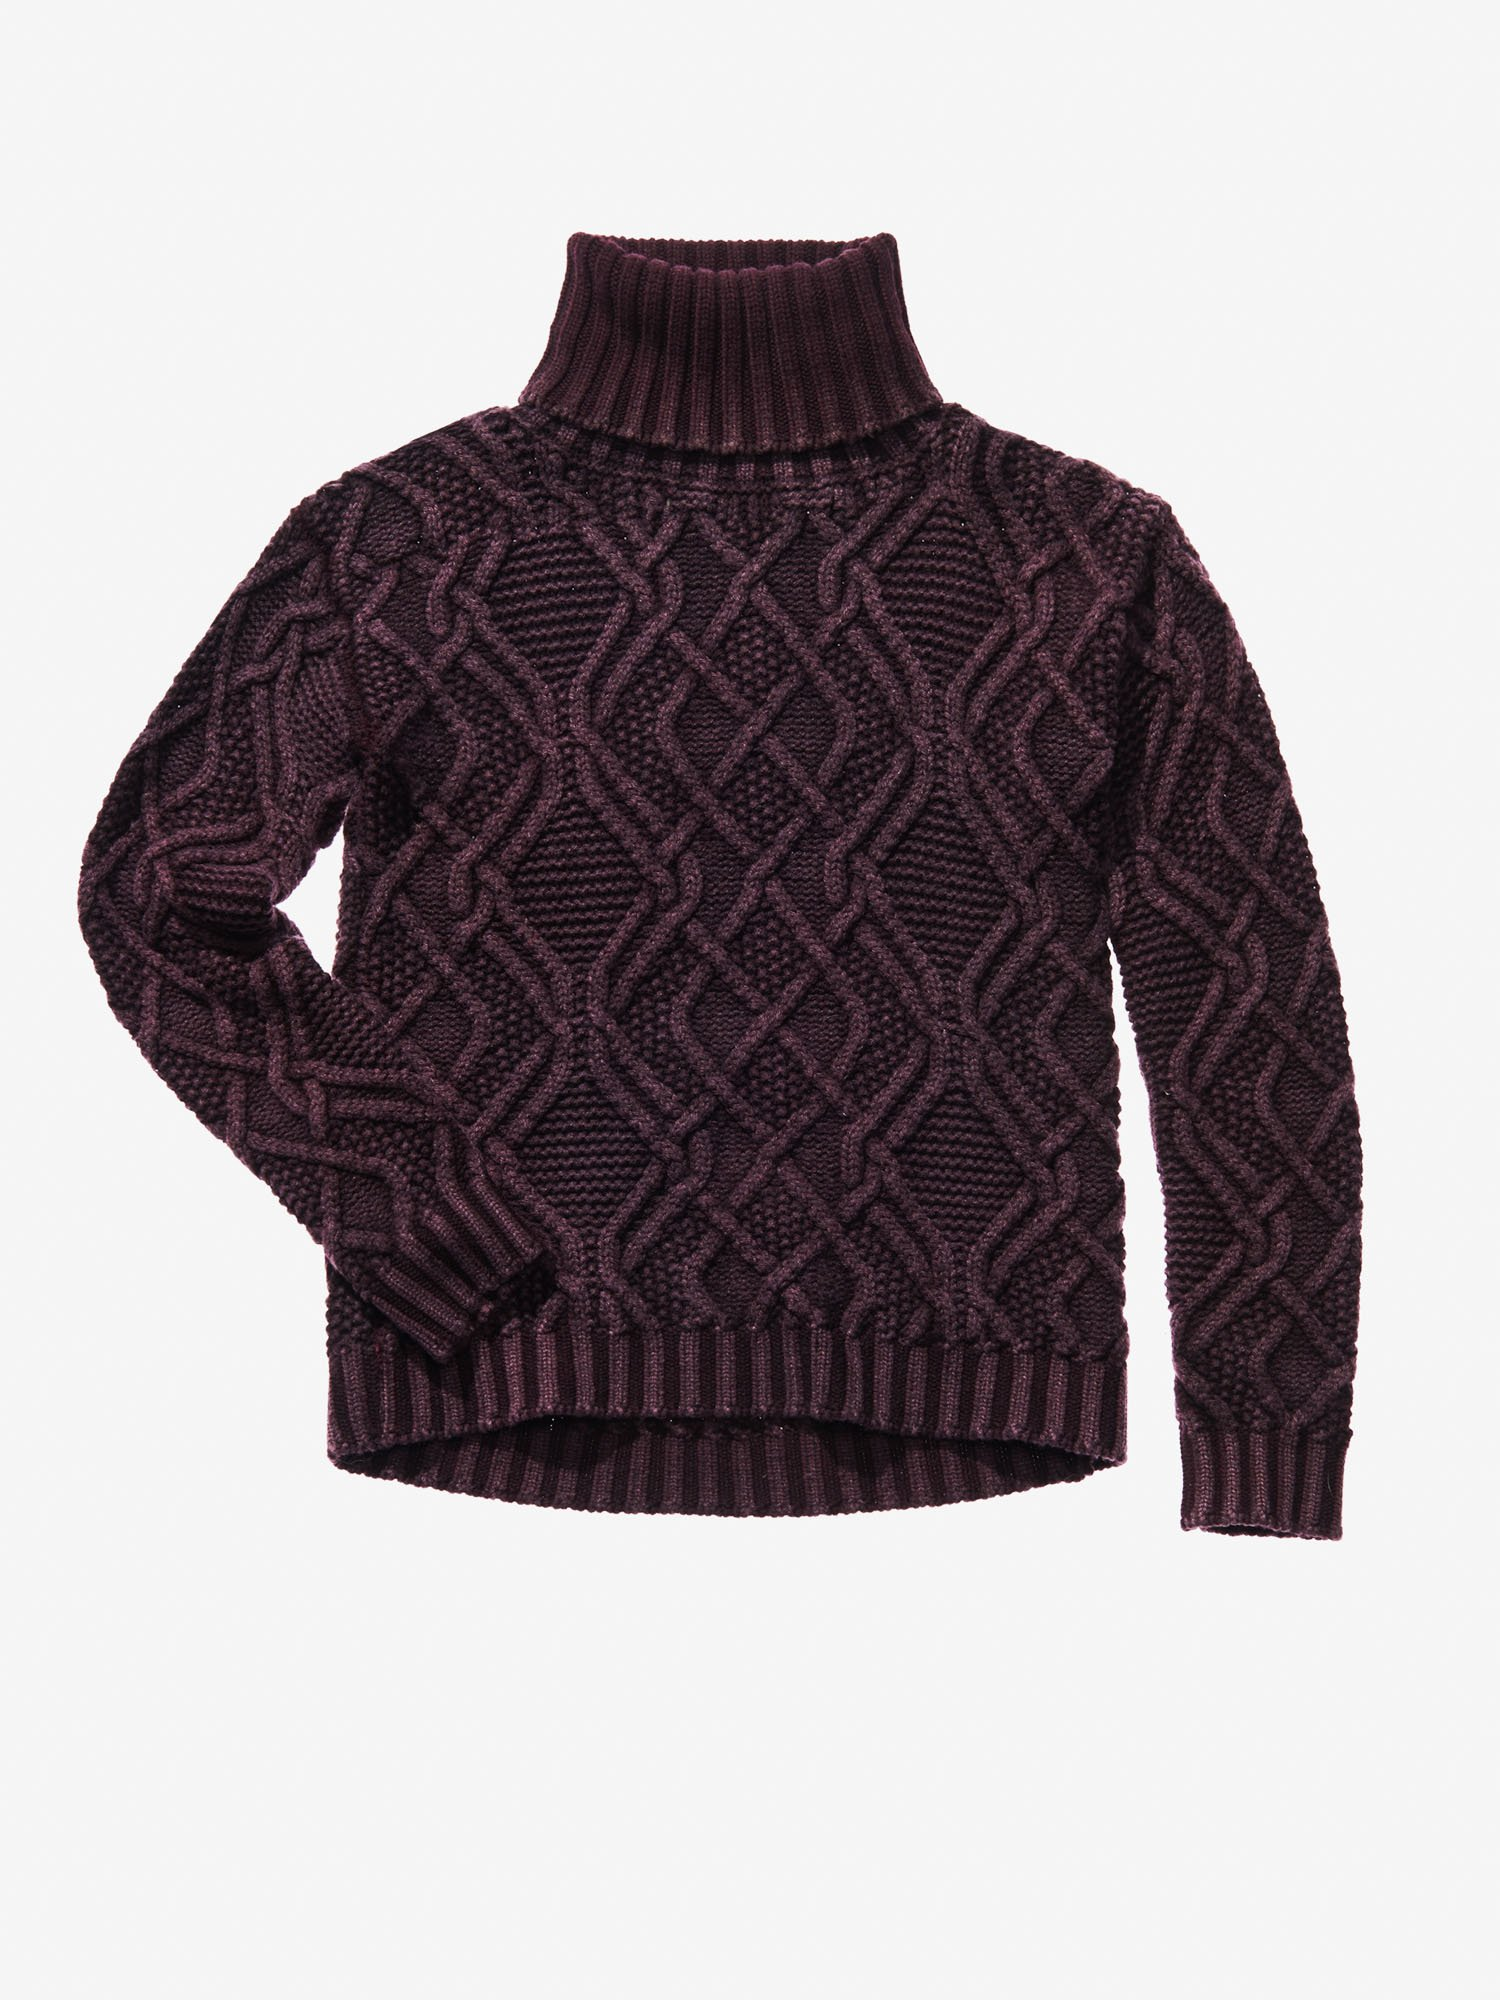 TURTLENECK CHUNKY CABLE KNIT JUMPER - Blauer